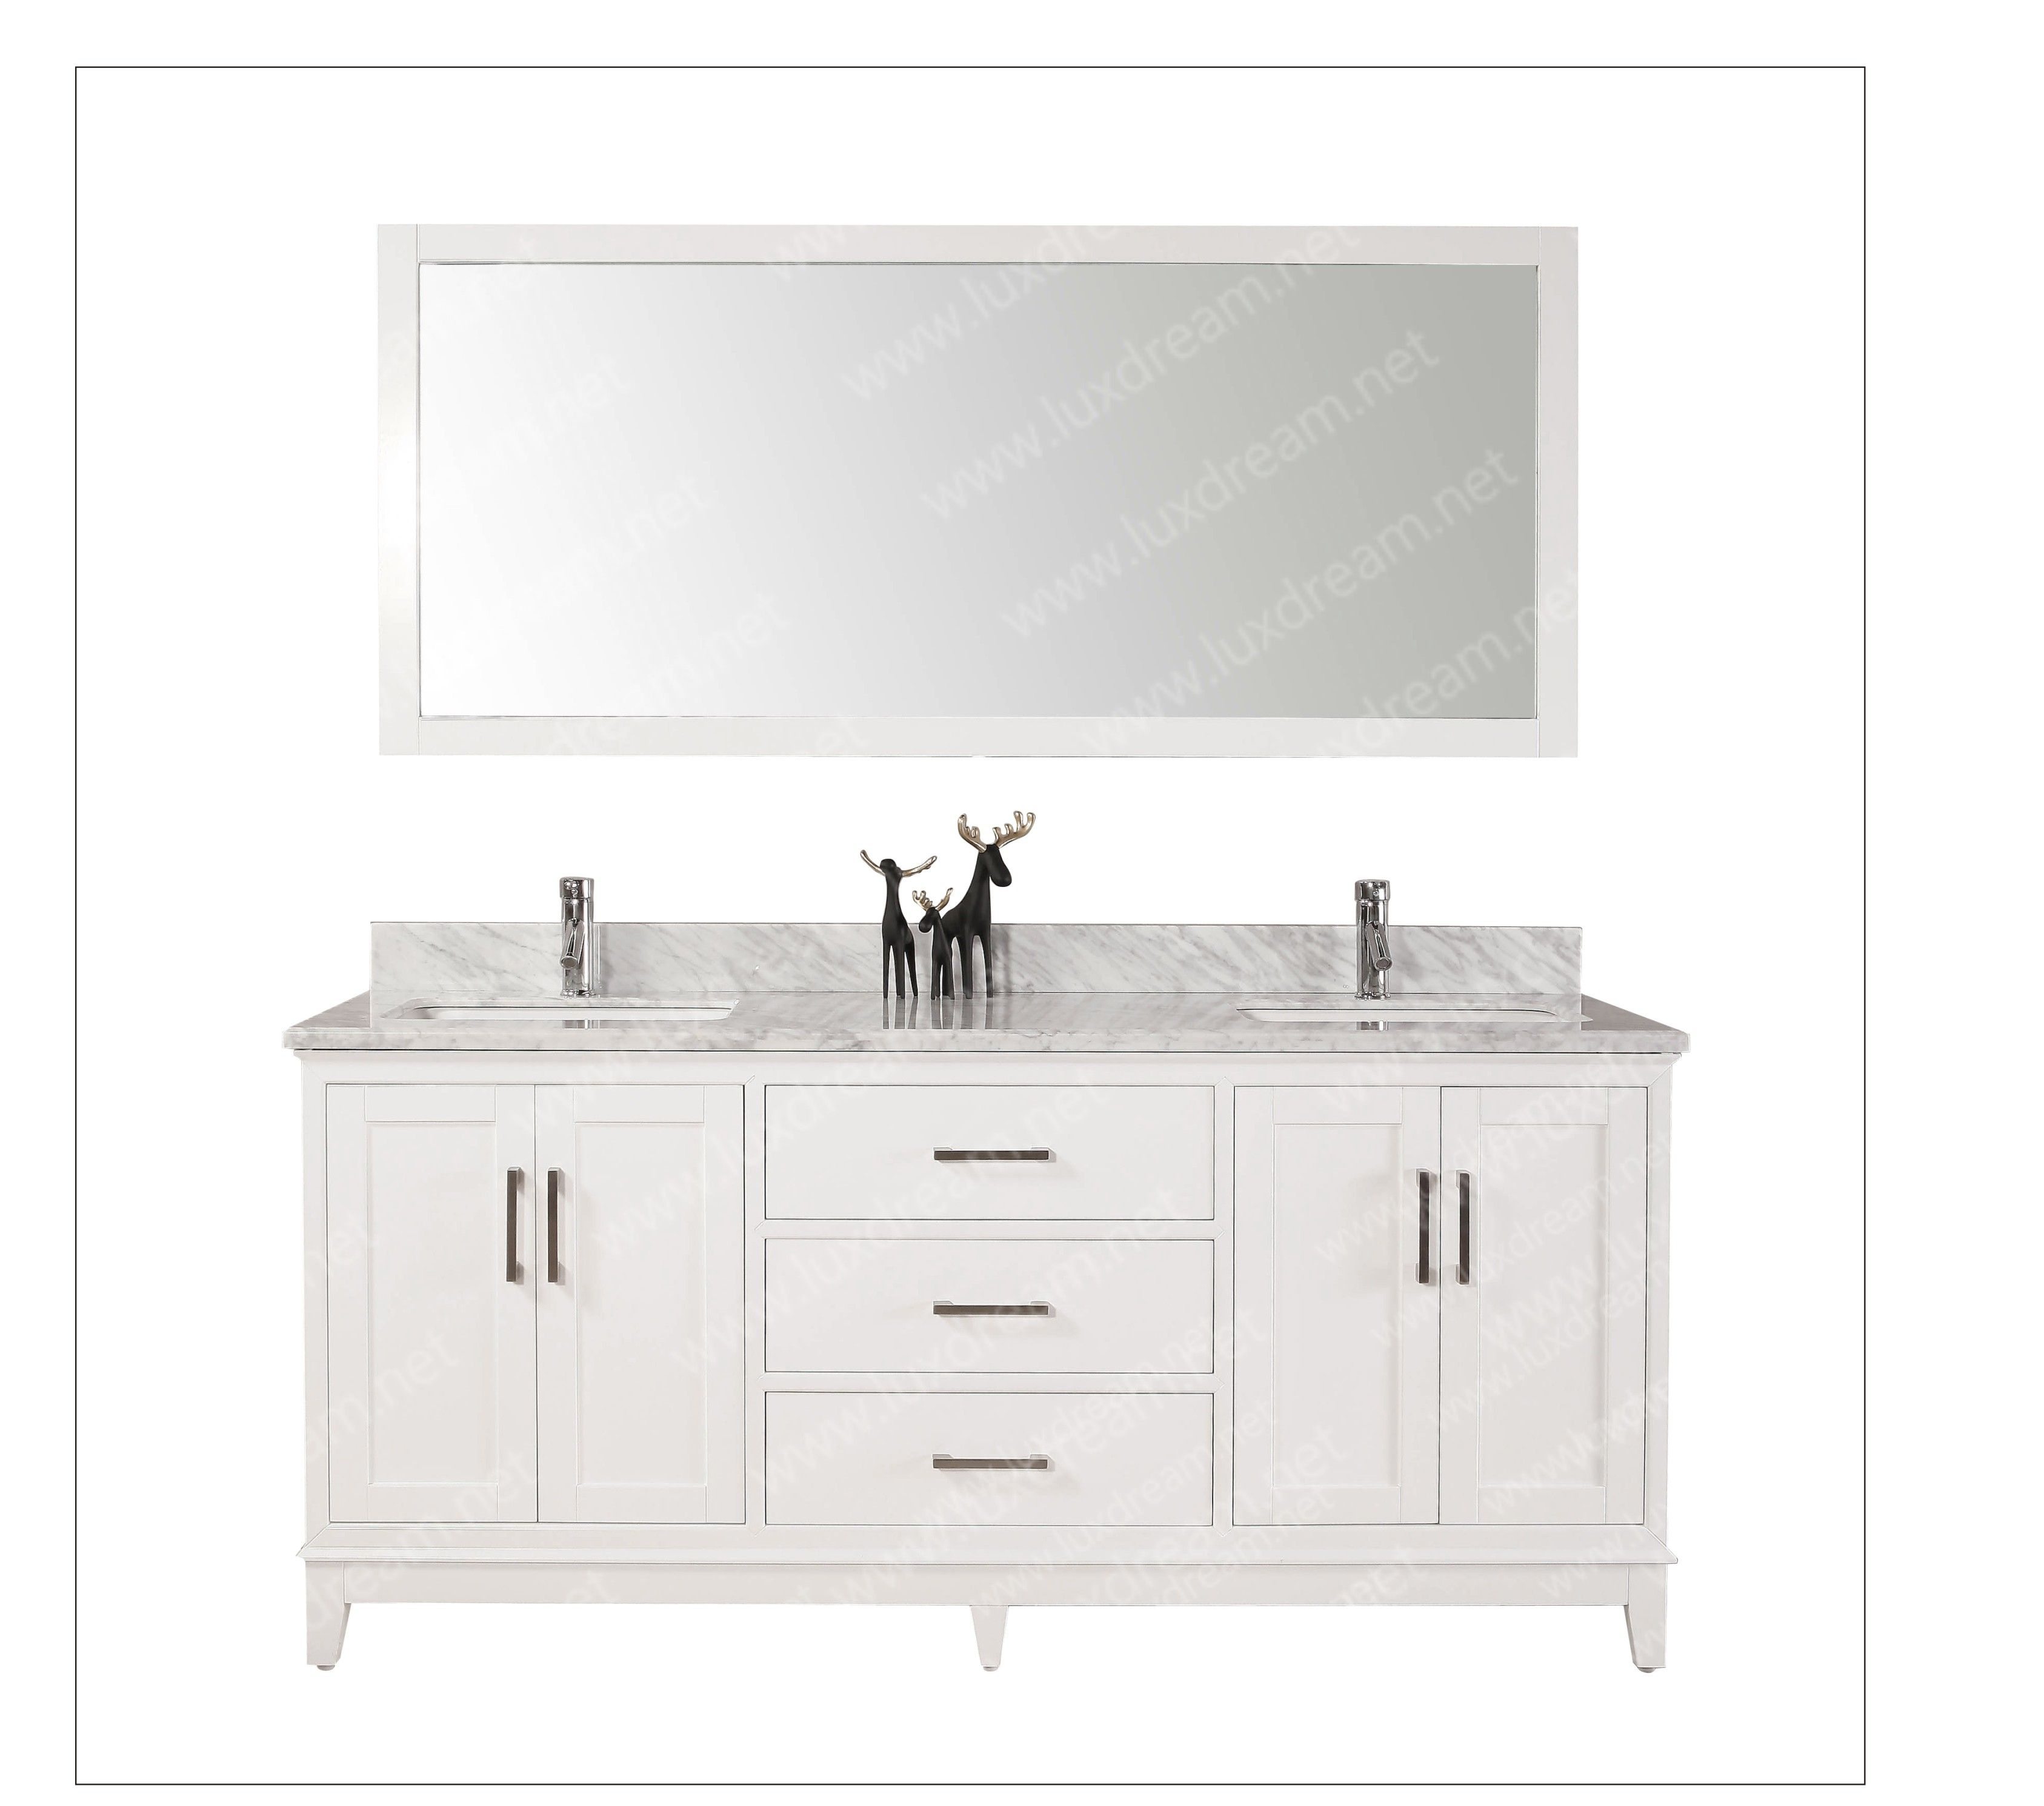 Uu double sinks bathroom vanity with carrara white marble